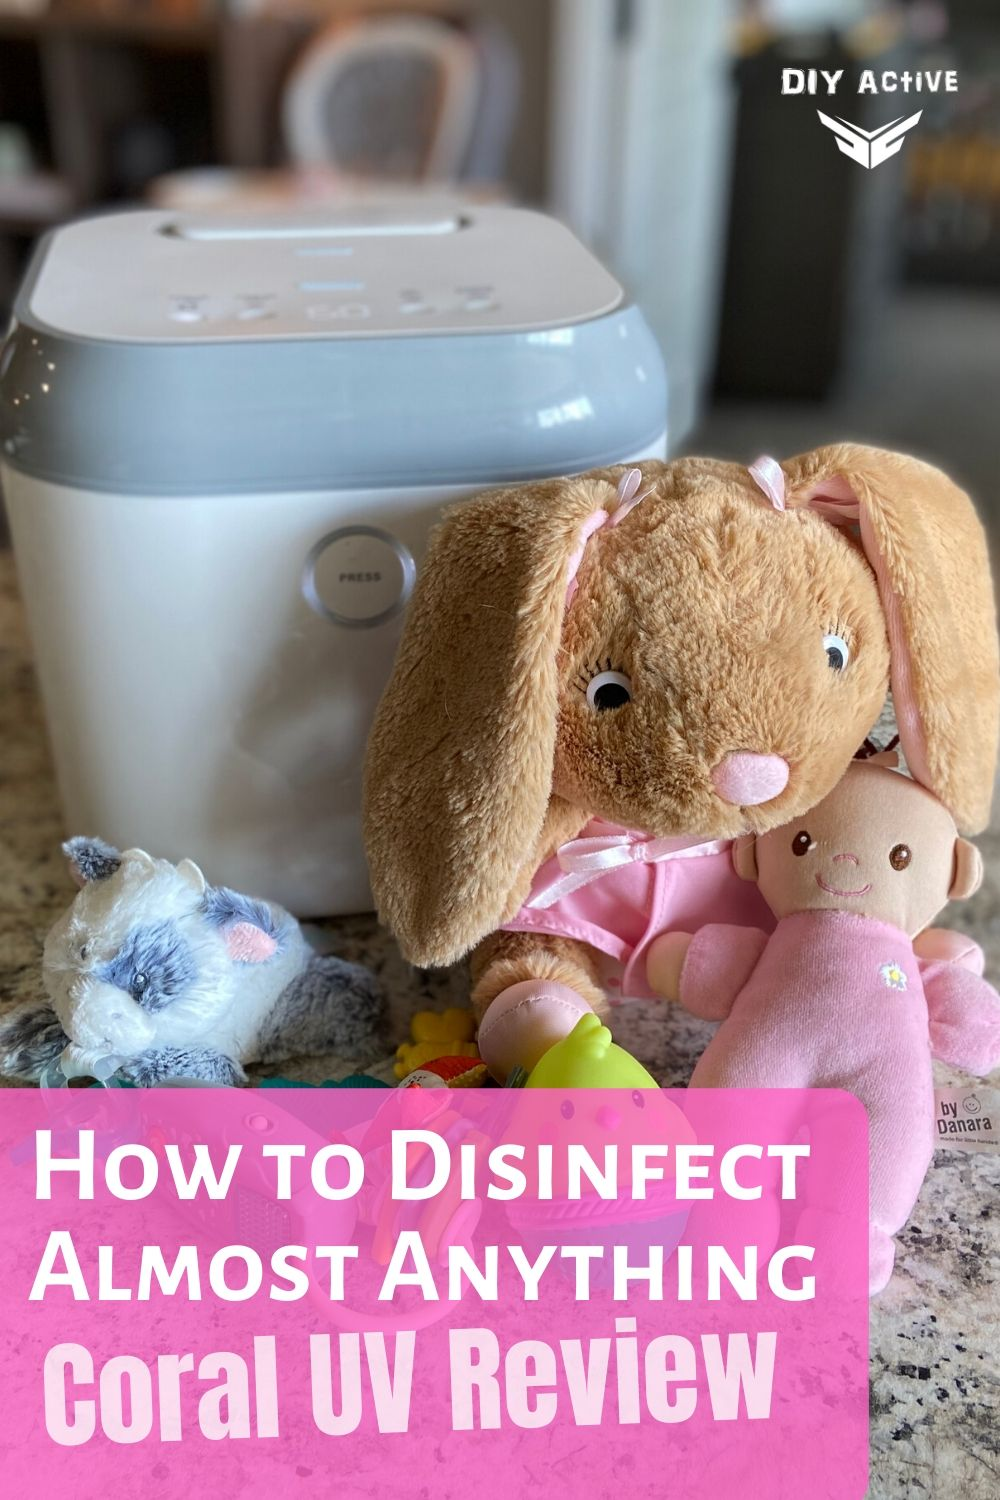 Coral UV Review Disinfect Almost Anything Easily